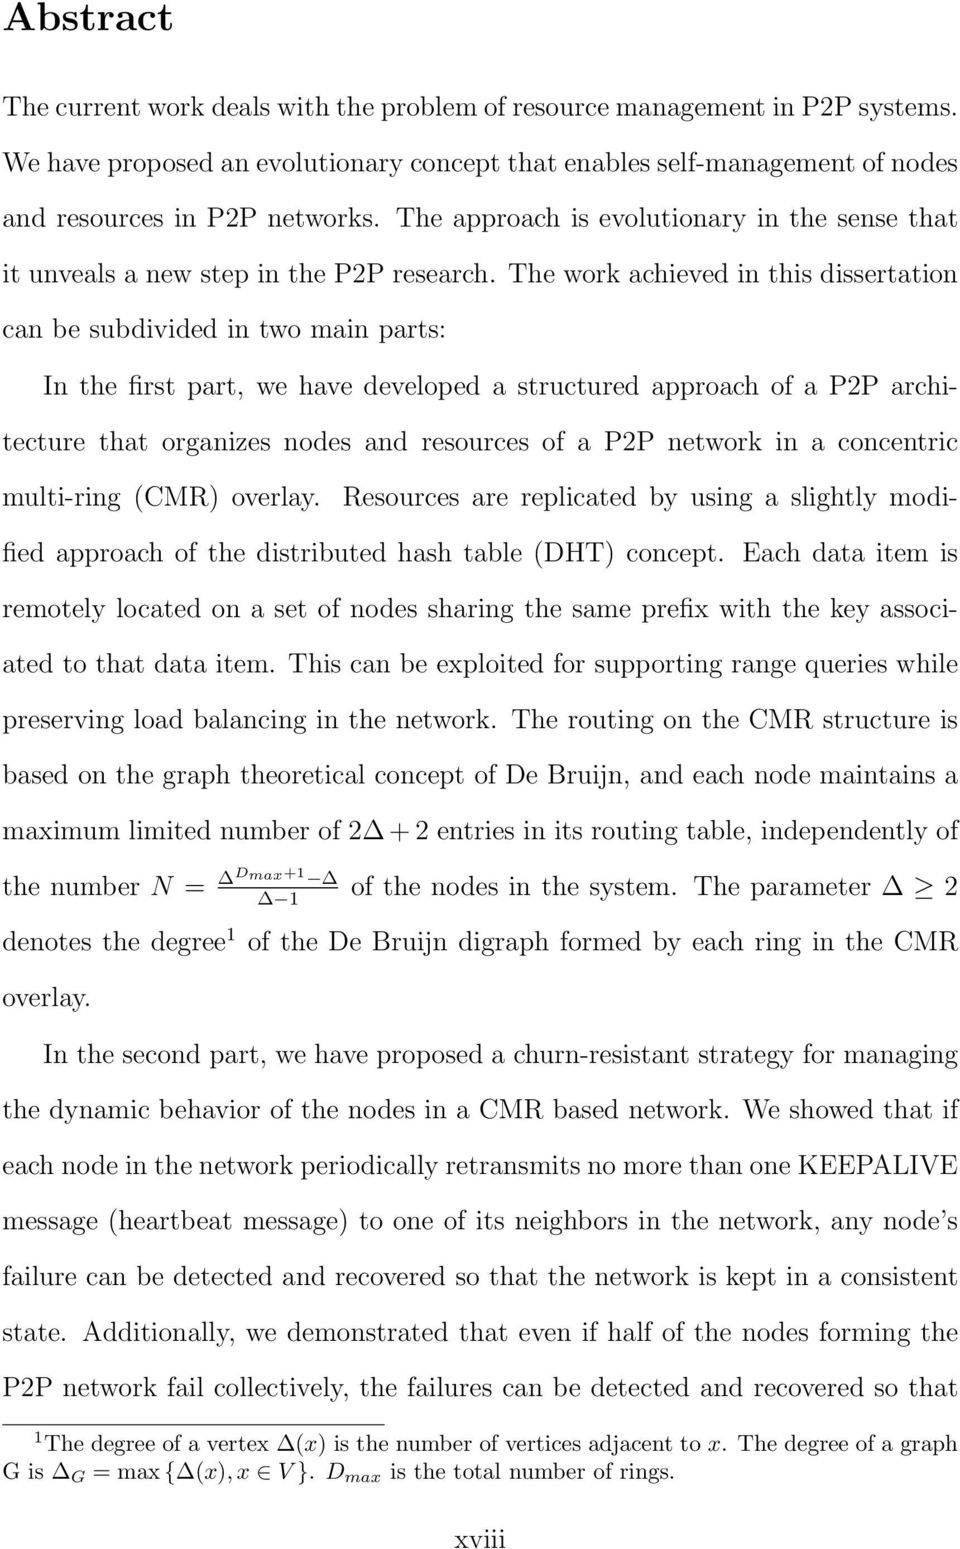 The work achieved in this dissertation can be subdivided in two main parts: In the first part, we have developed a structured approach of a P2P architecture that organizes nodes and resources of a